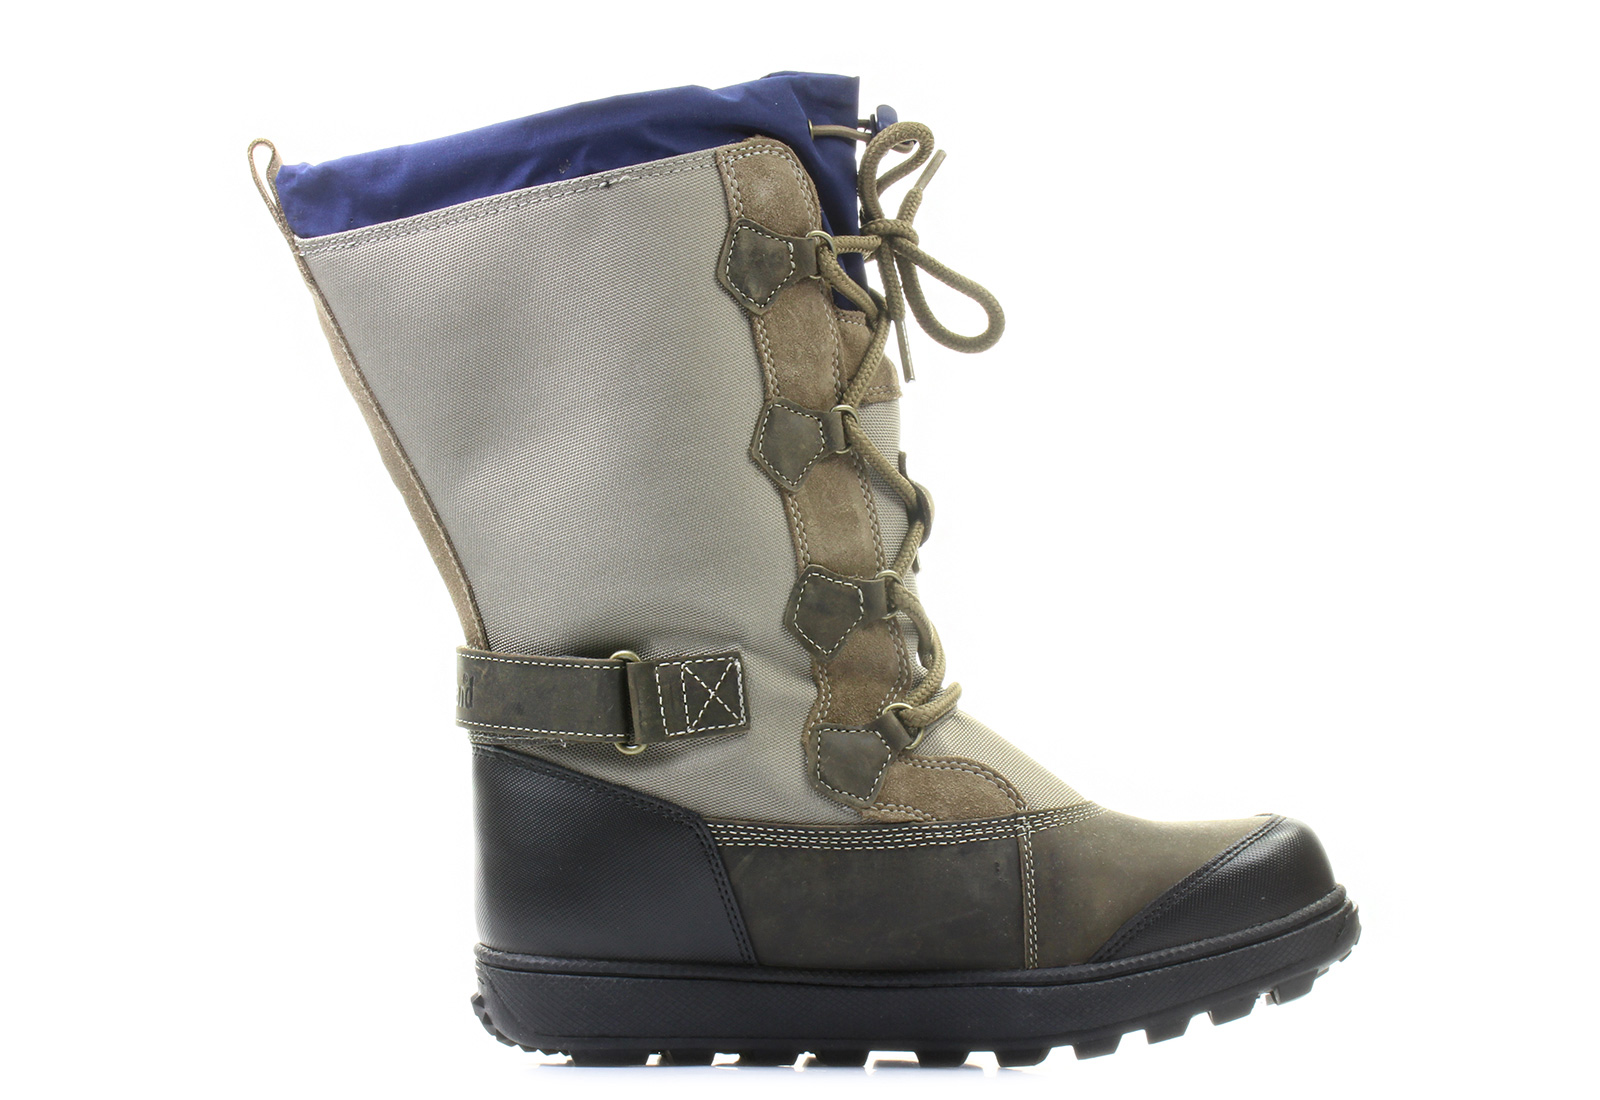 Timberland Boots Mukluk 2093r Nvy Online Shop For